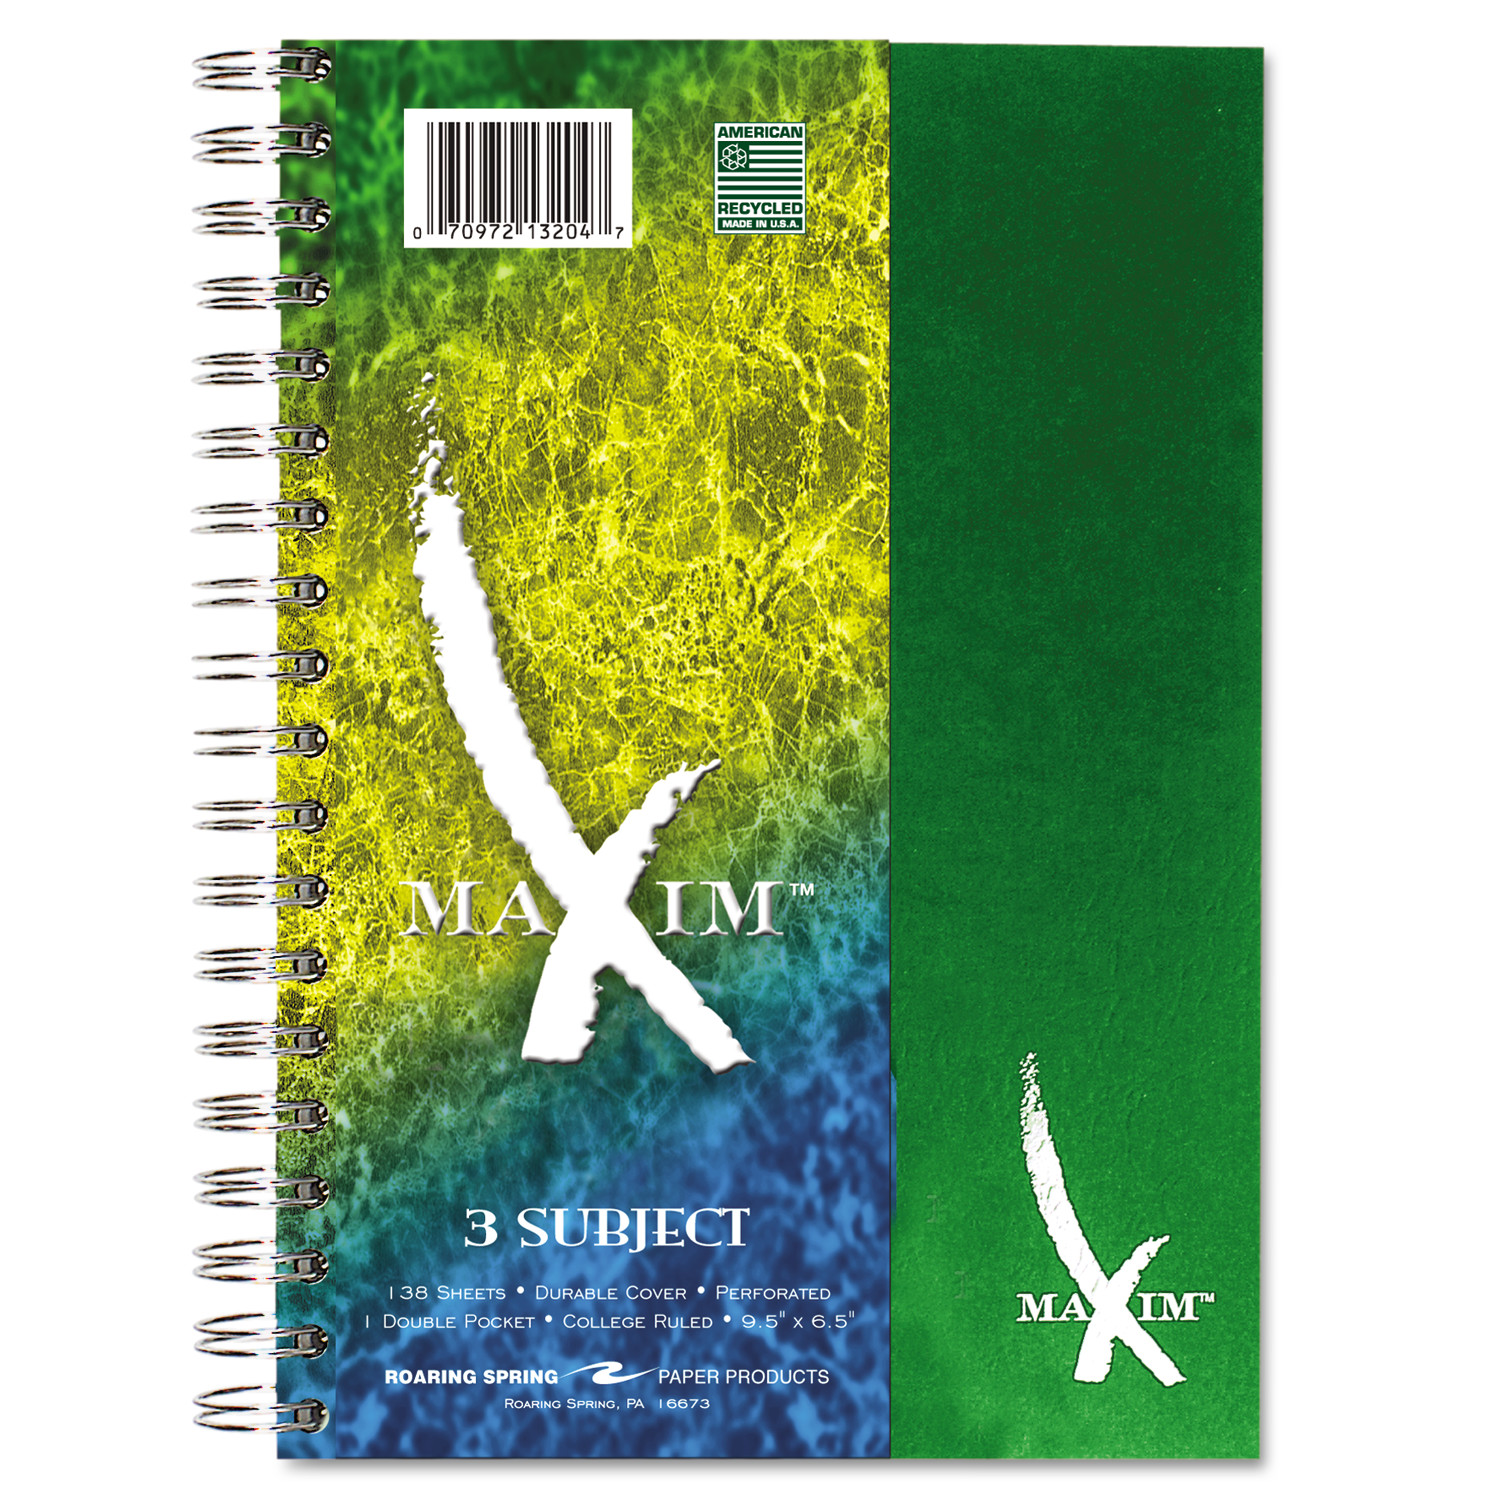 Roaring Spring Maxim Notebook, College Rule, 9 1/2 x 6 1/2, 3 Subject, 138 Sheets, Assorted